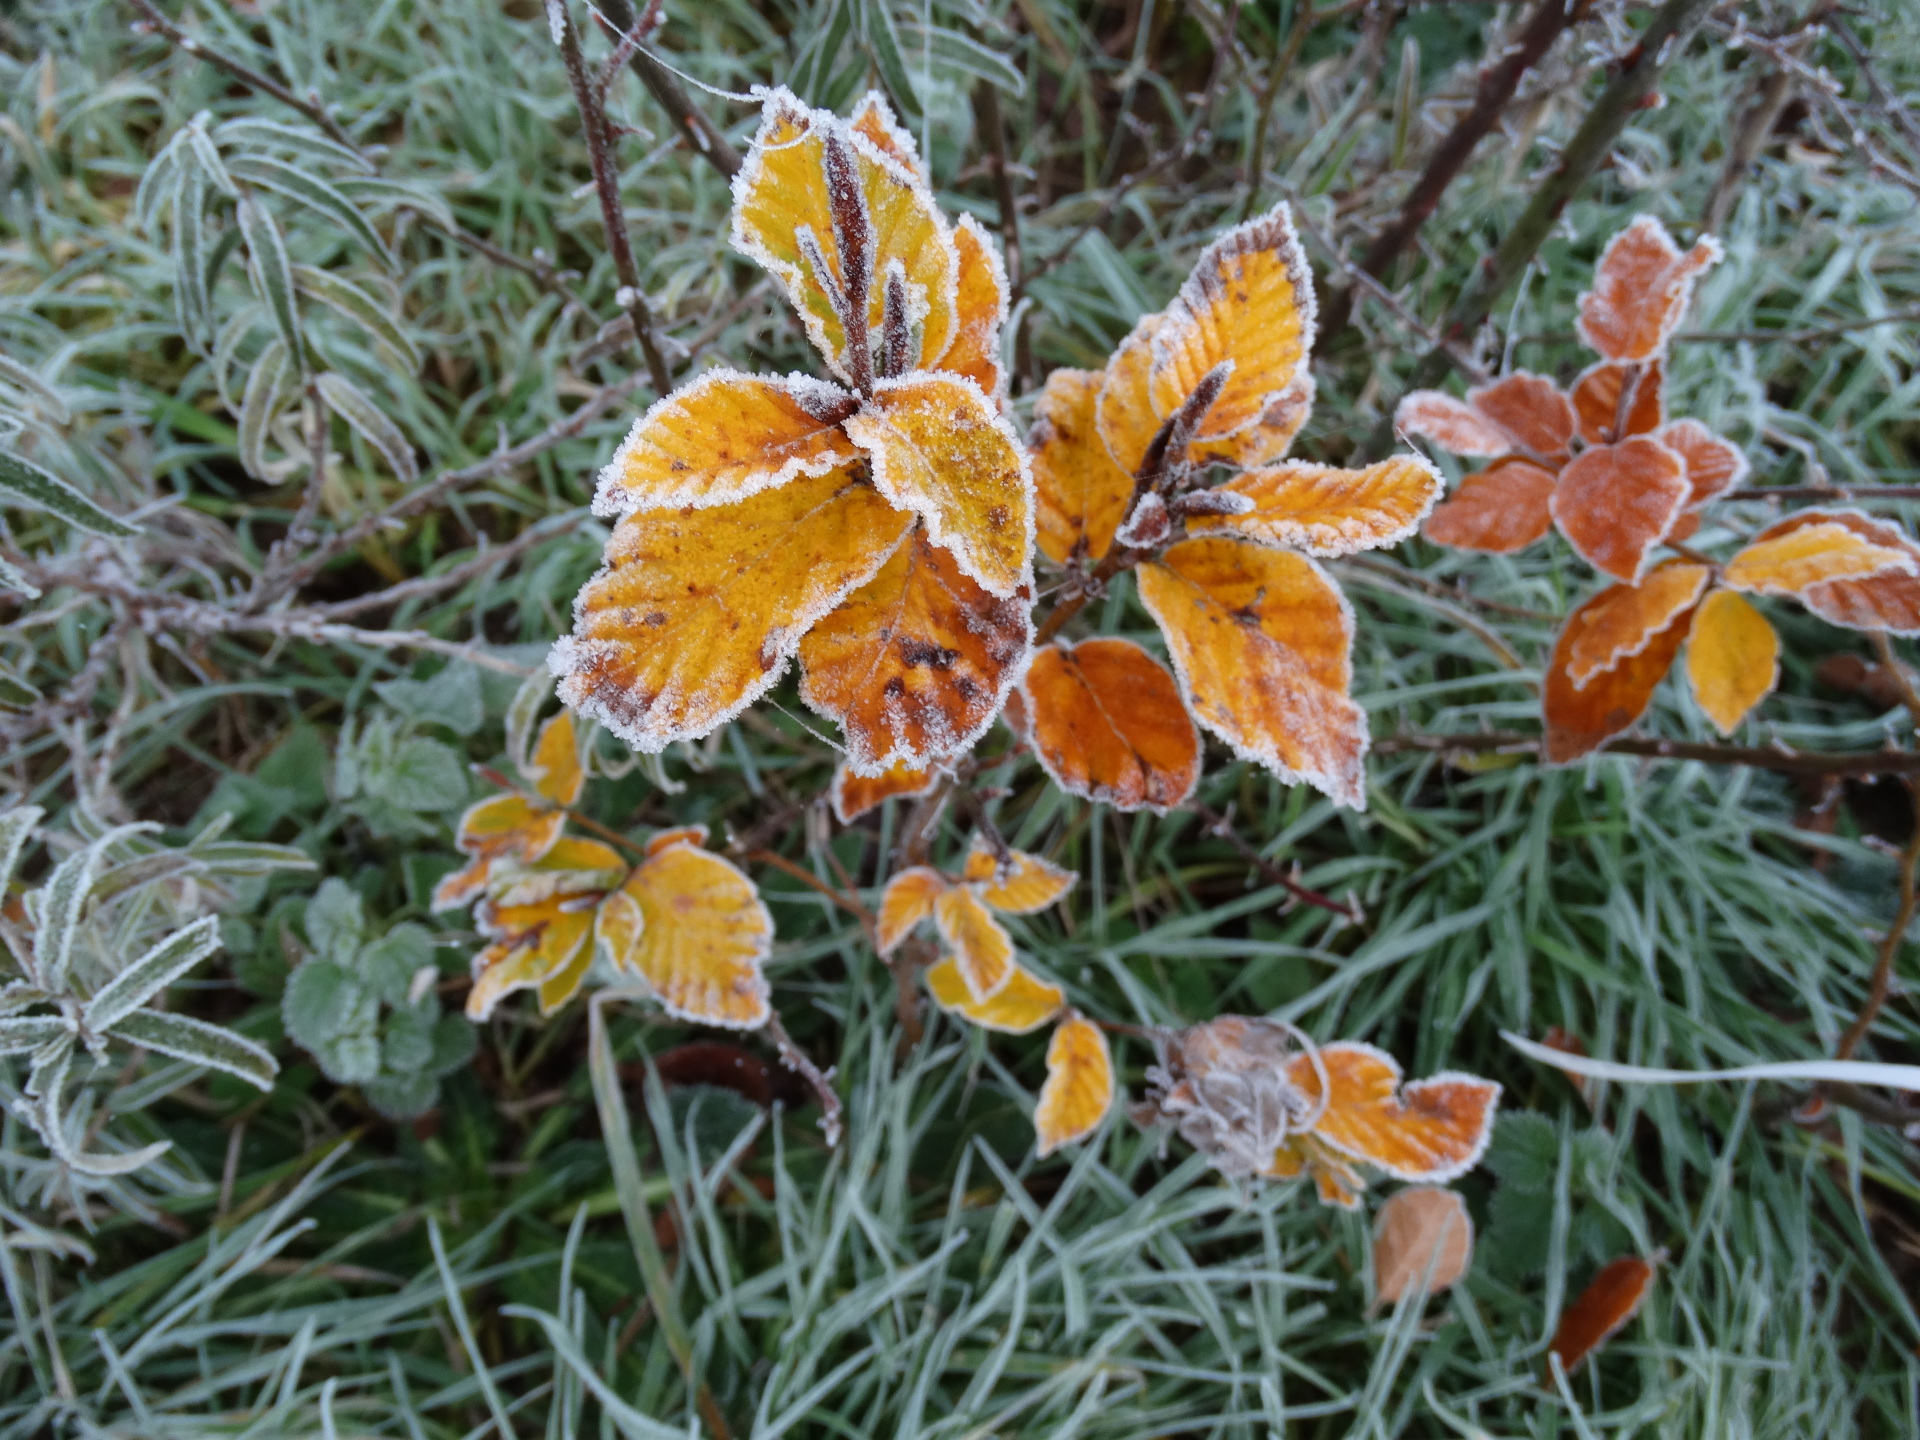 A frosted beech